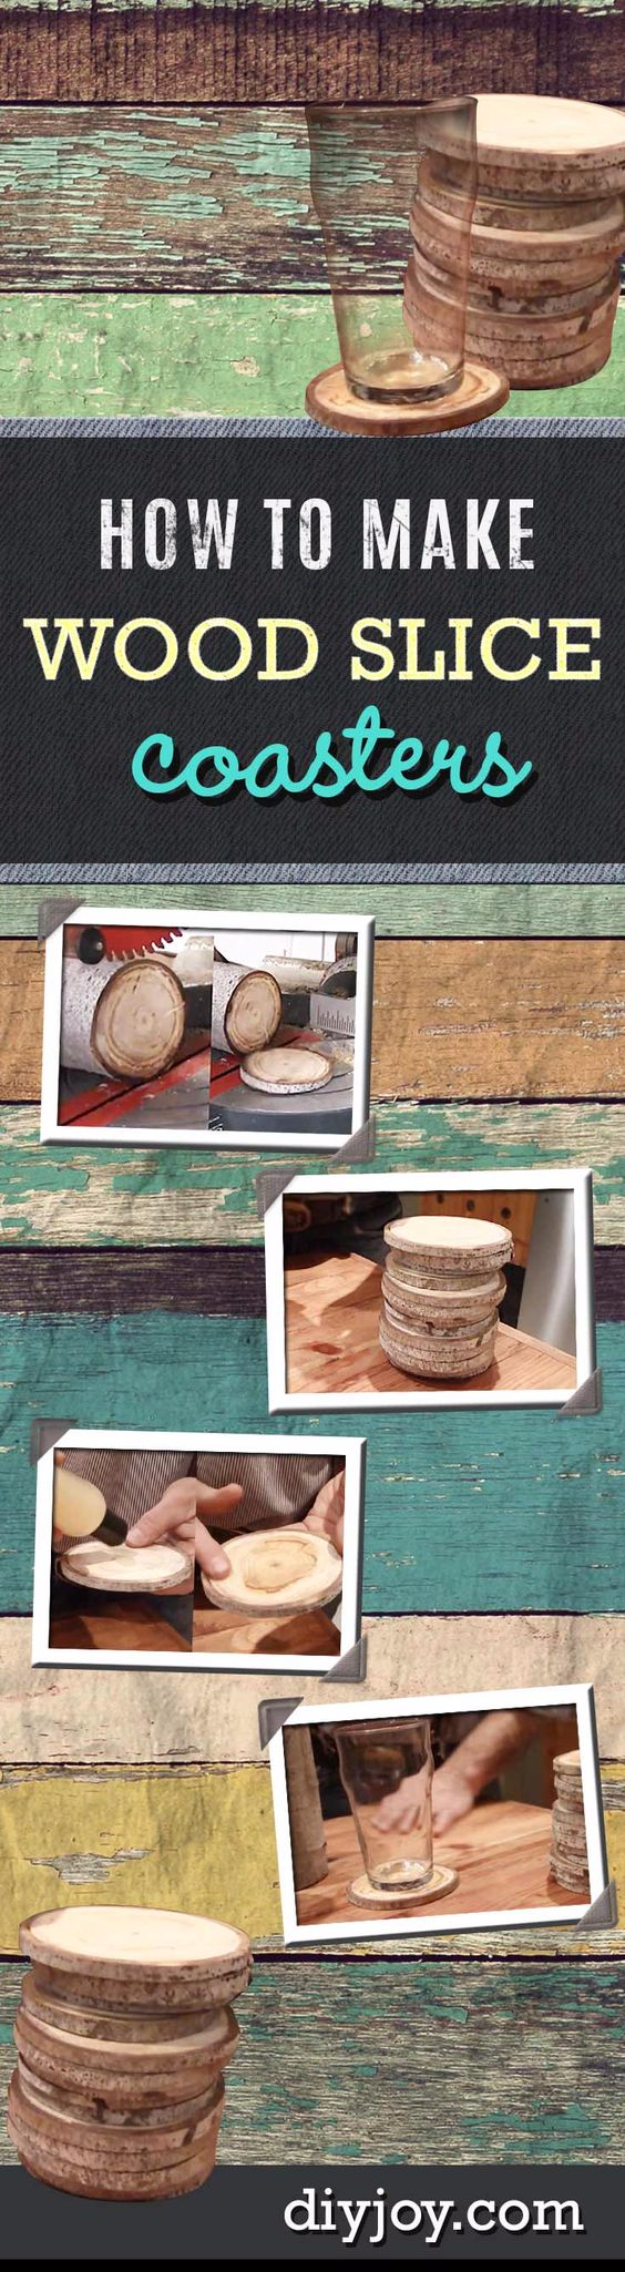 DIY Coasters - DIY Coasters From Wood Slices - Best Quick DIY Gifts and Home Decor - Easy Step by Step Tutorials for DIY Coaster Projects - Mod Podge, Tile, Painted, Photo and Sewing Projects - Cool Christmas Presents for Him and Her - DIY Projects and Crafts by DIY Joy http://diyjoy.com/diy-coasters